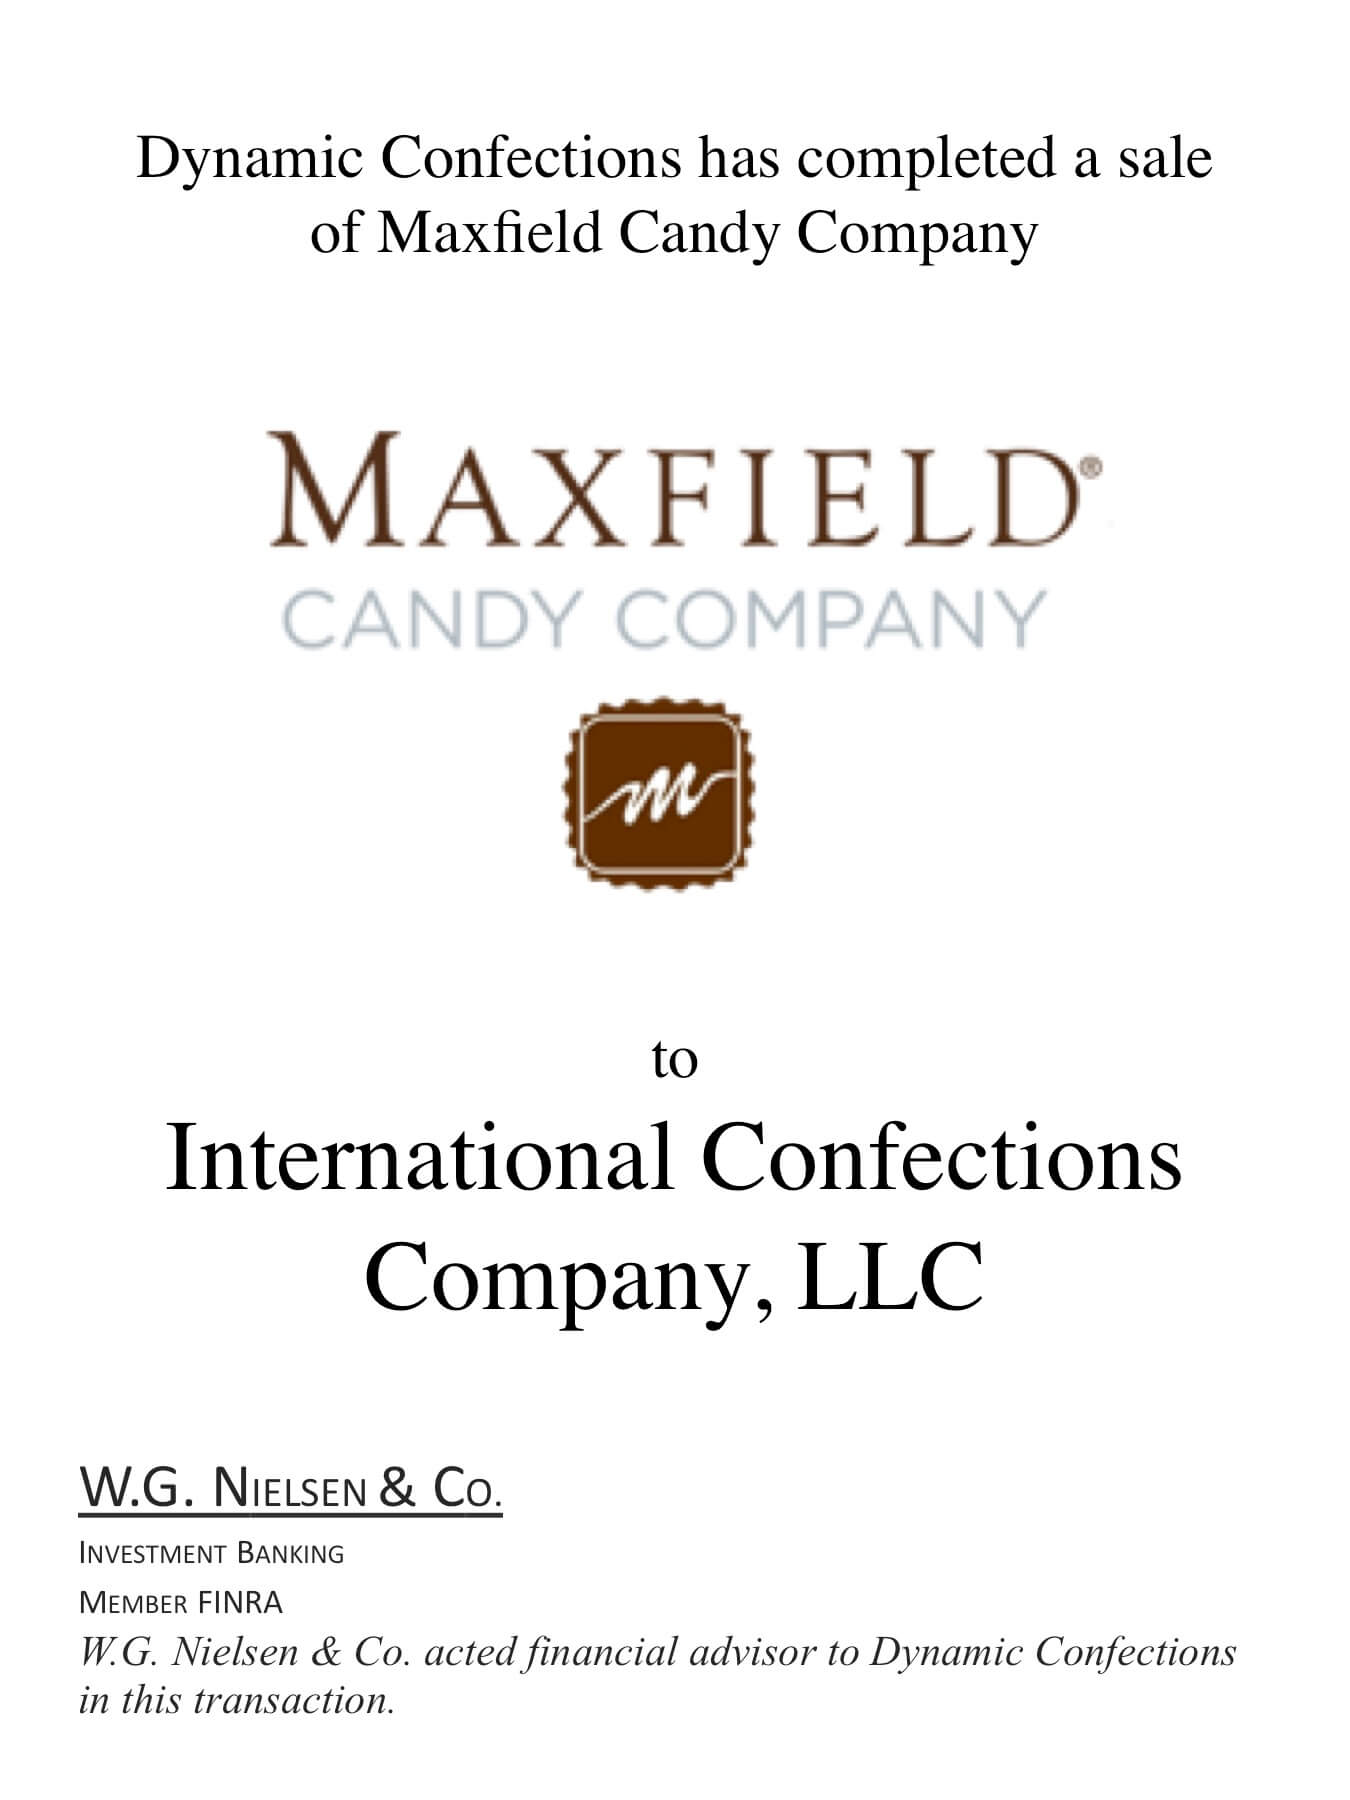 maxfield candy company investment banking transaction